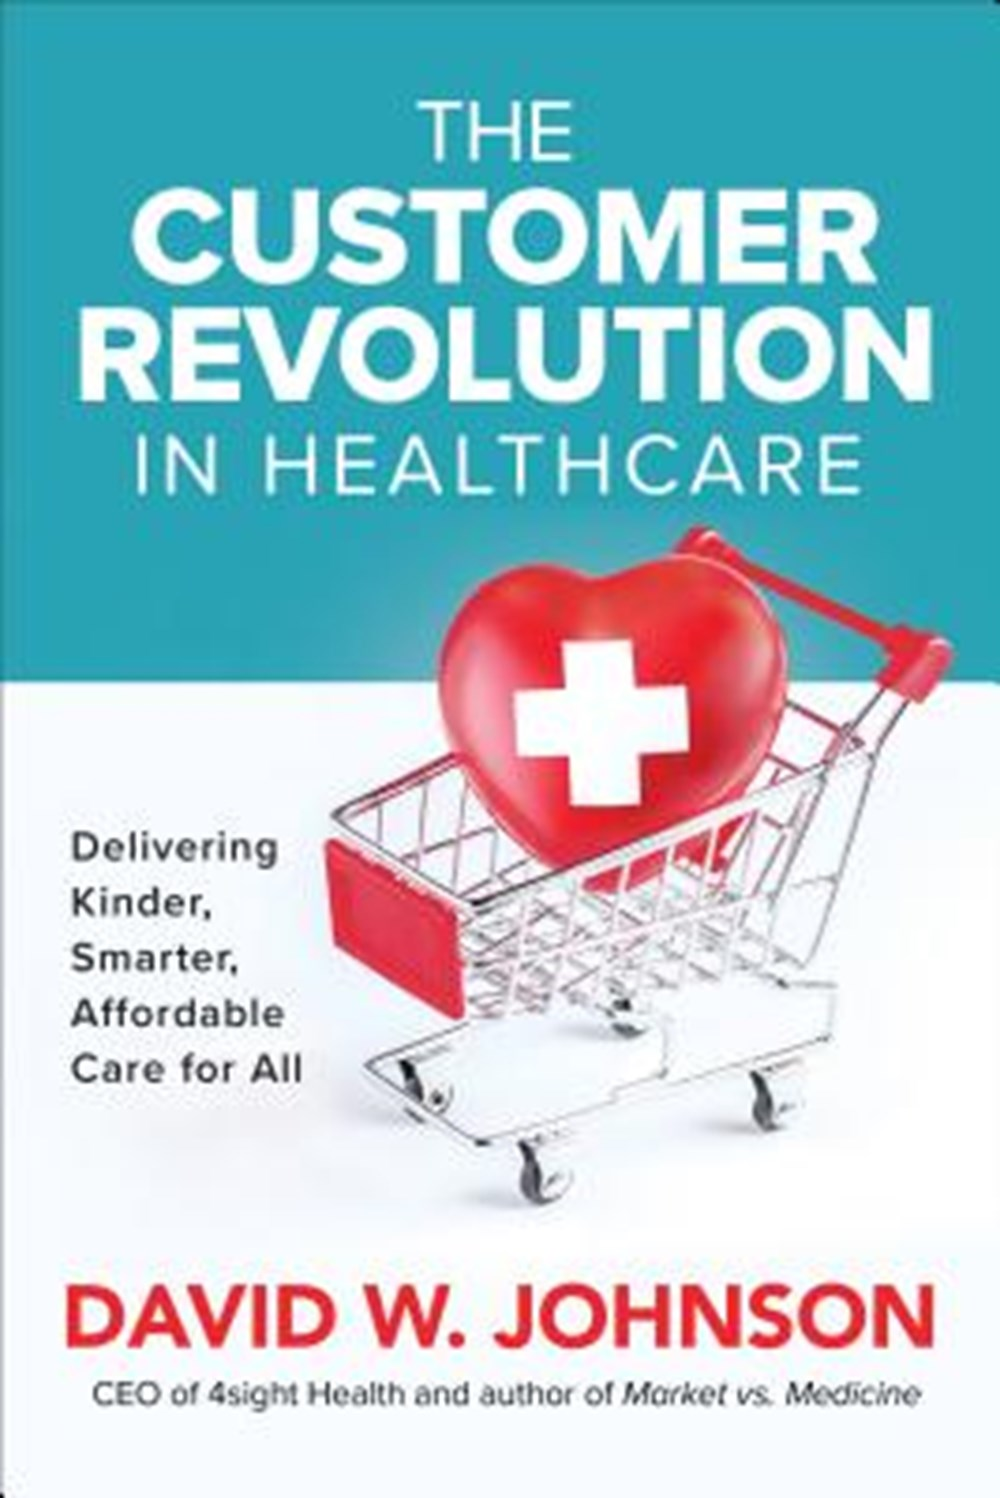 Customer Revolution in Healthcare Delivering Kinder, Smarter, Affordable Care for All